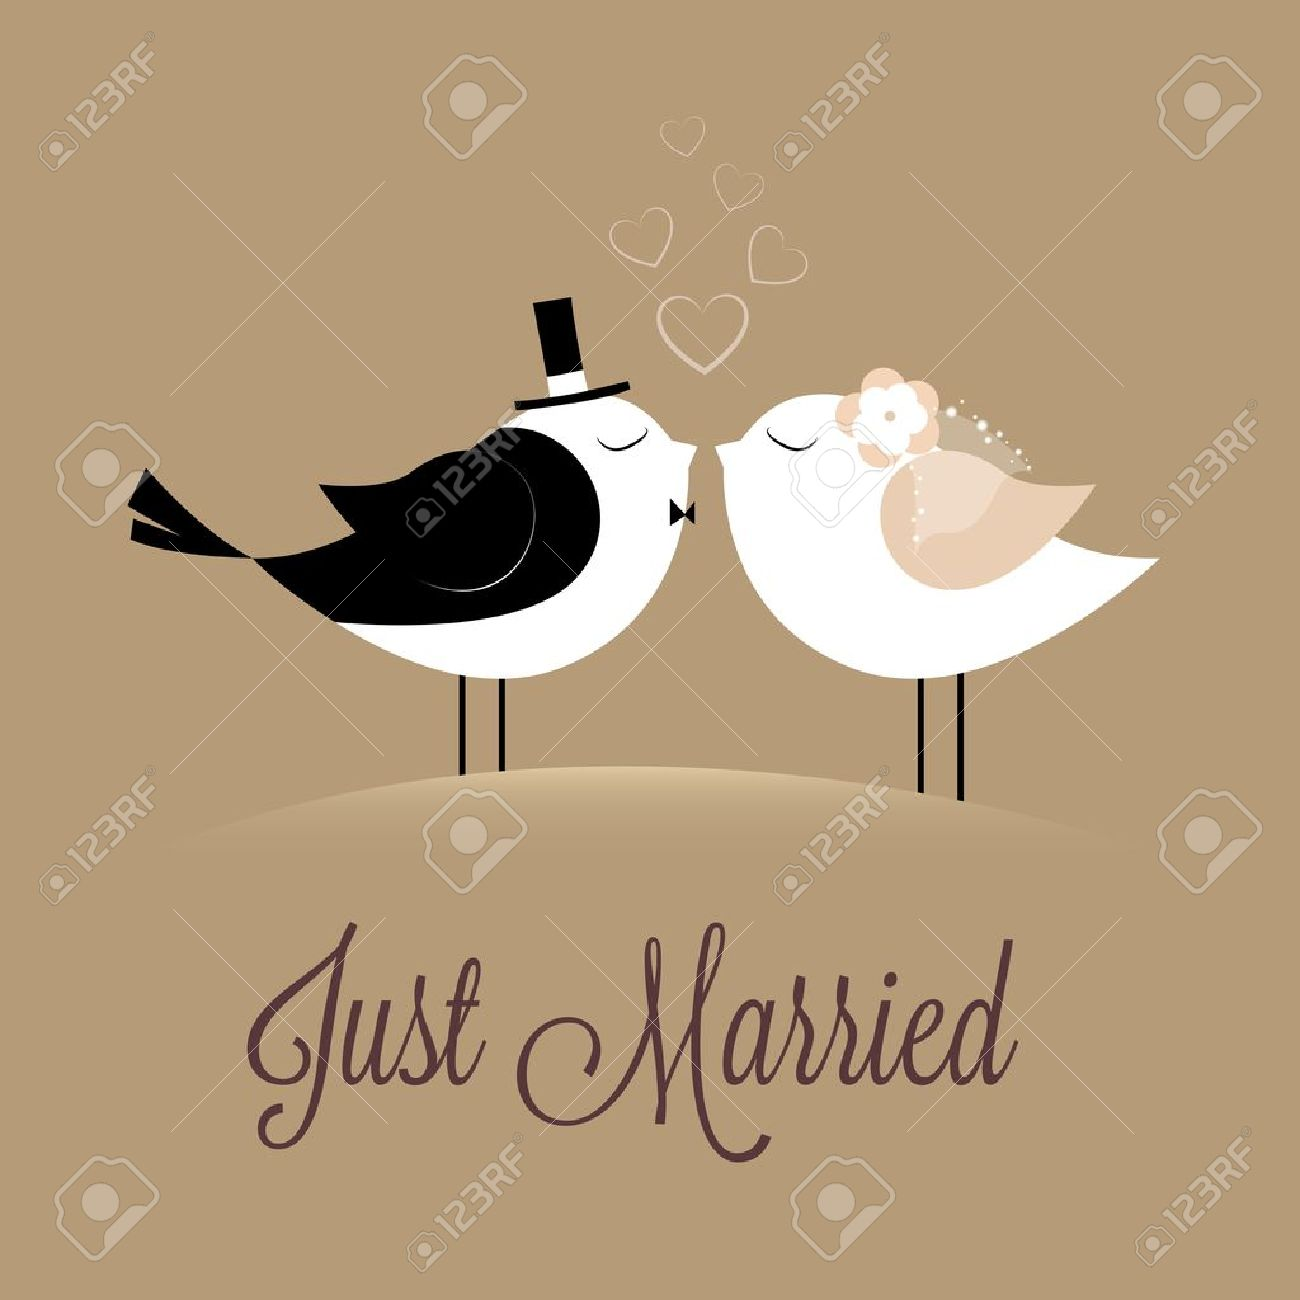 two birds in love Just married on brown background - 22066713